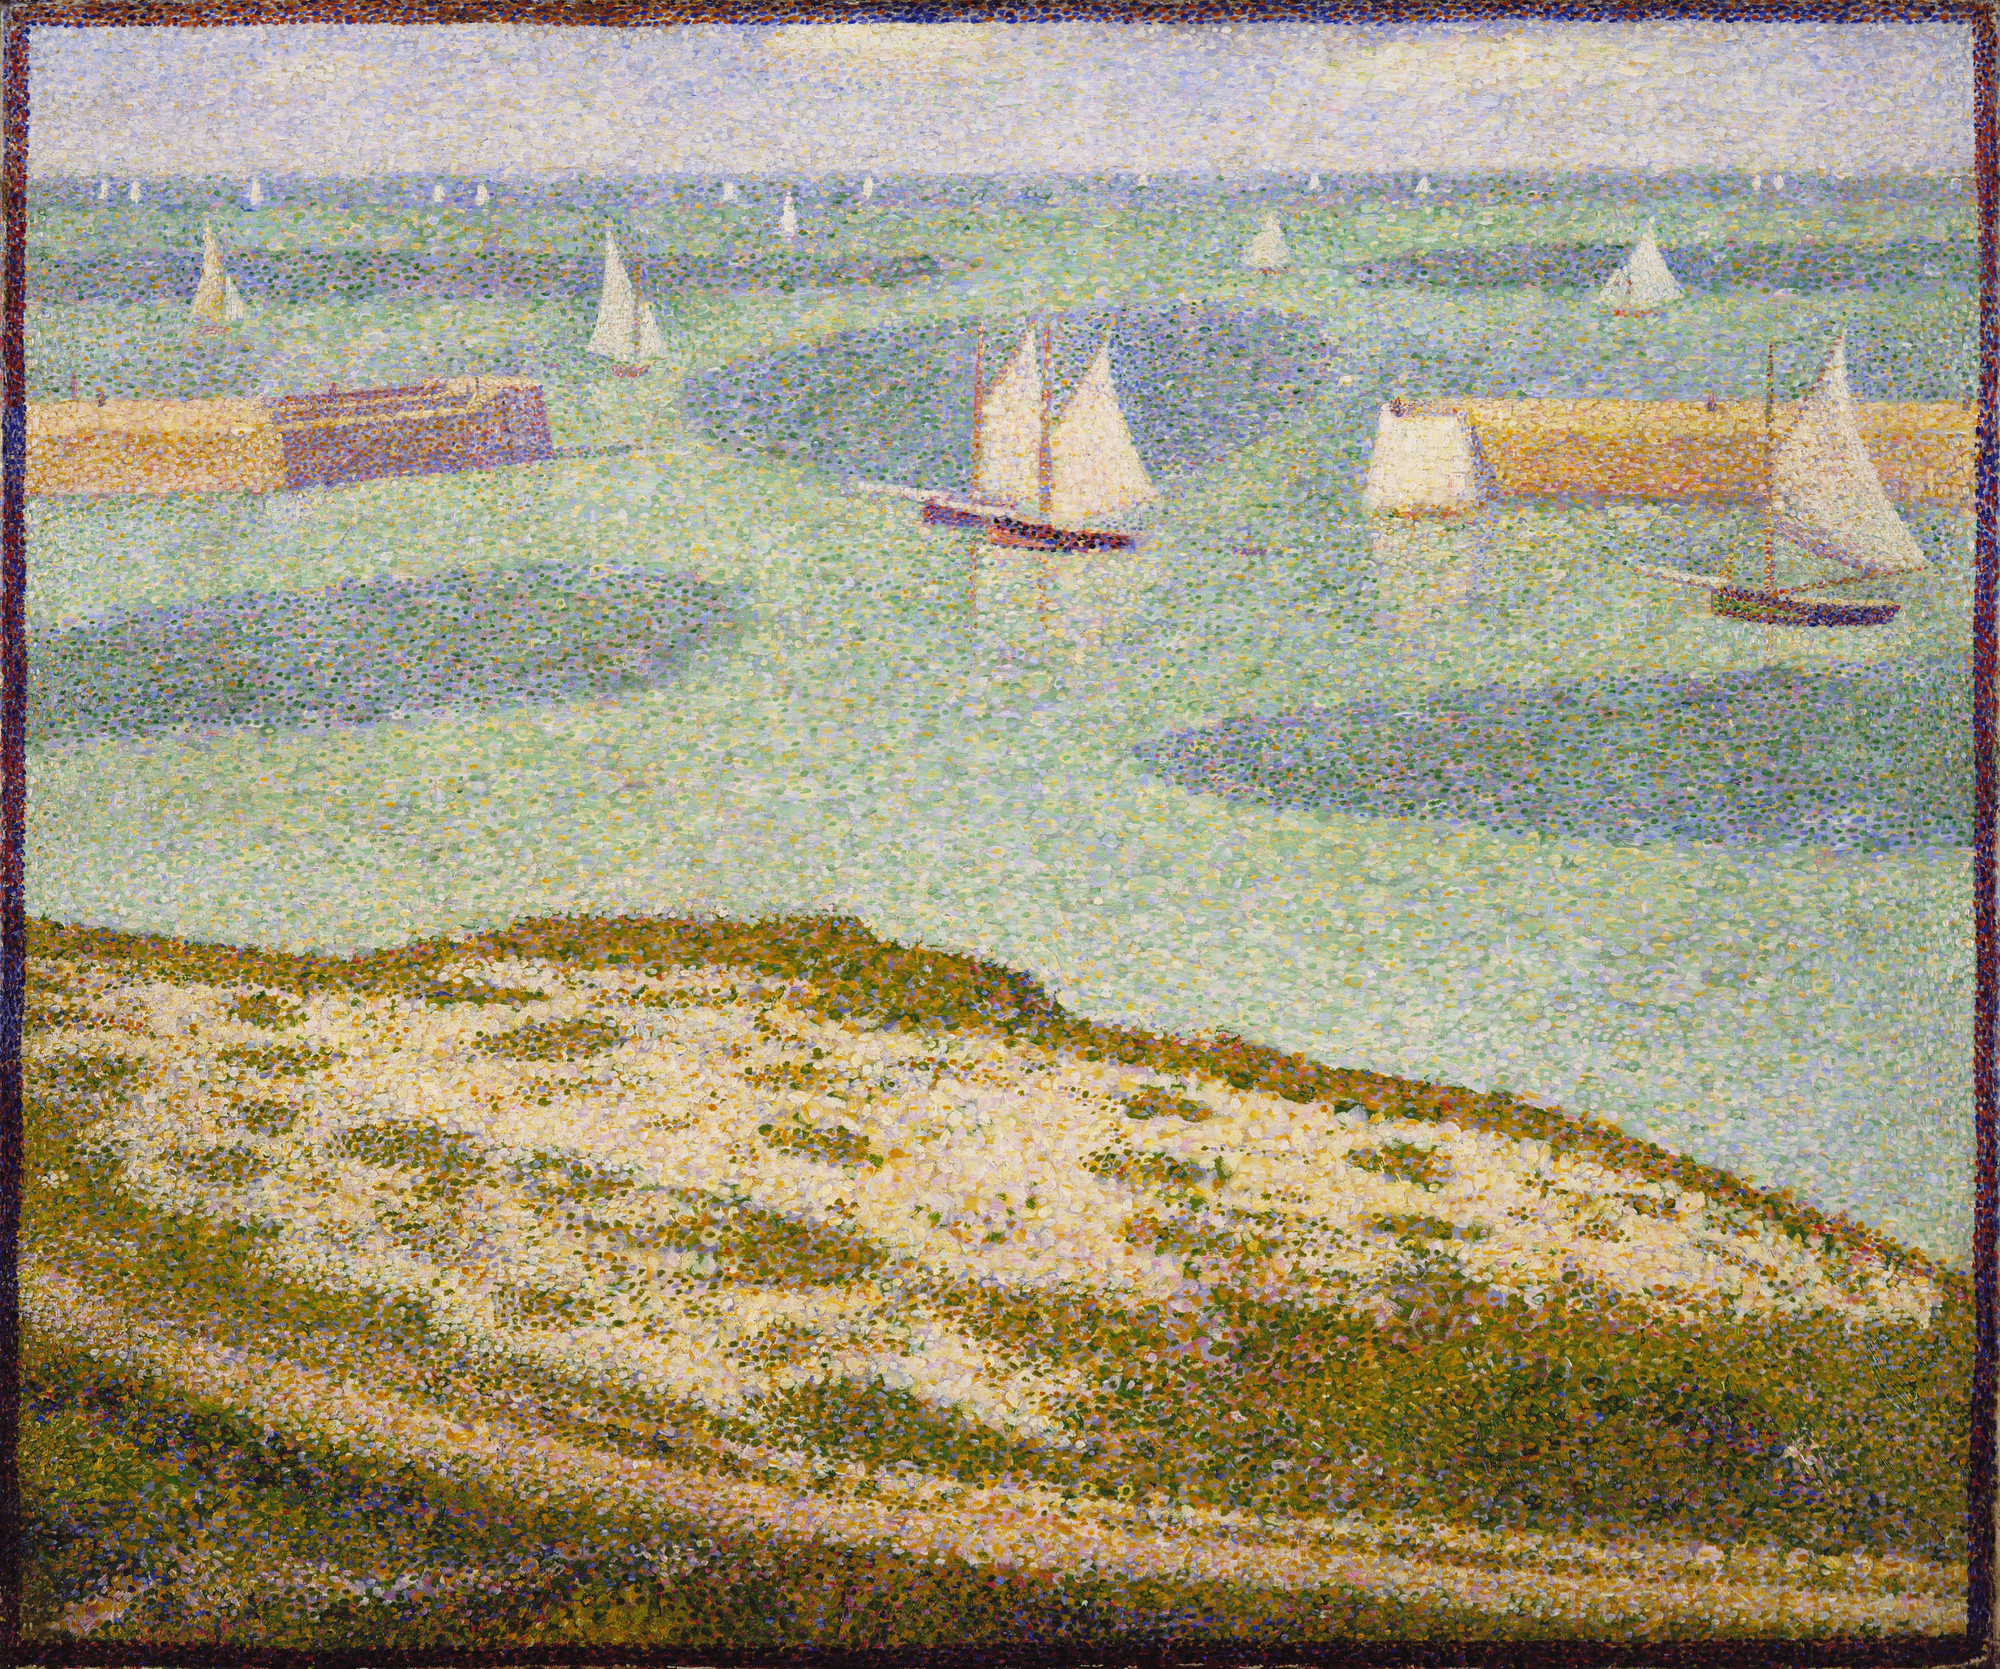 Georges-Pierre Seurat. Port-en-Bessin, Entrance to the Harbor. 1888